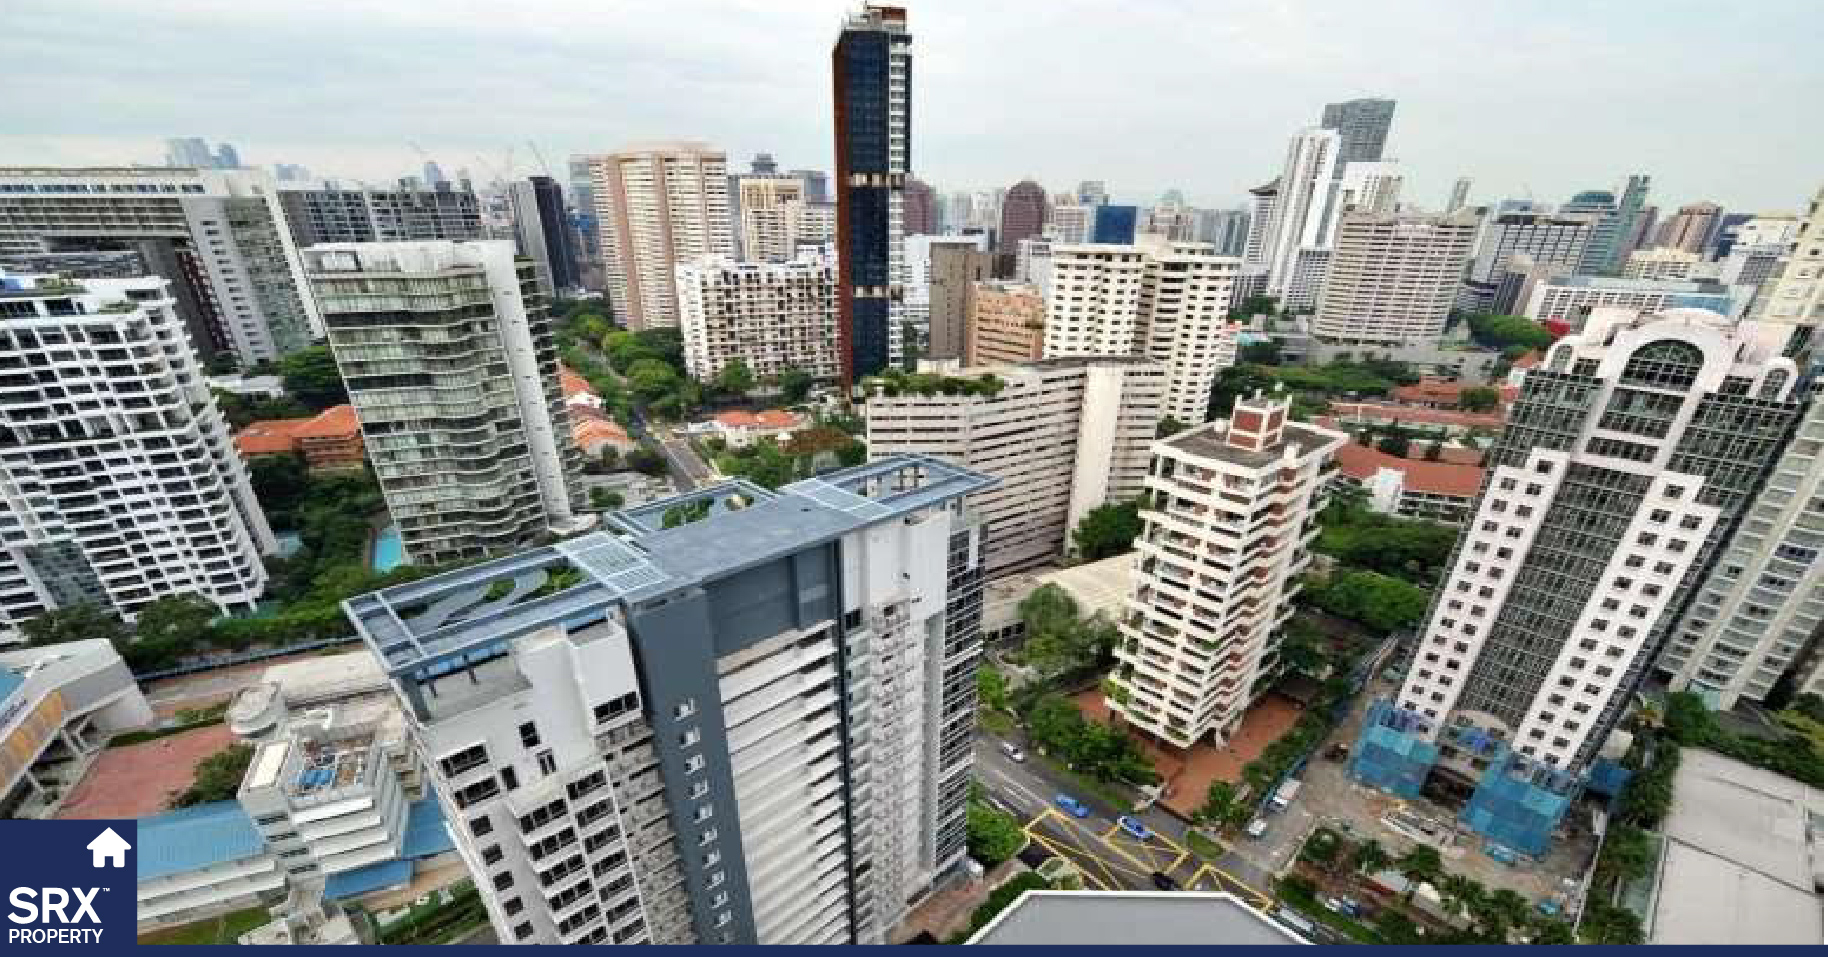 Present day Condos or apartment suites in Singapore